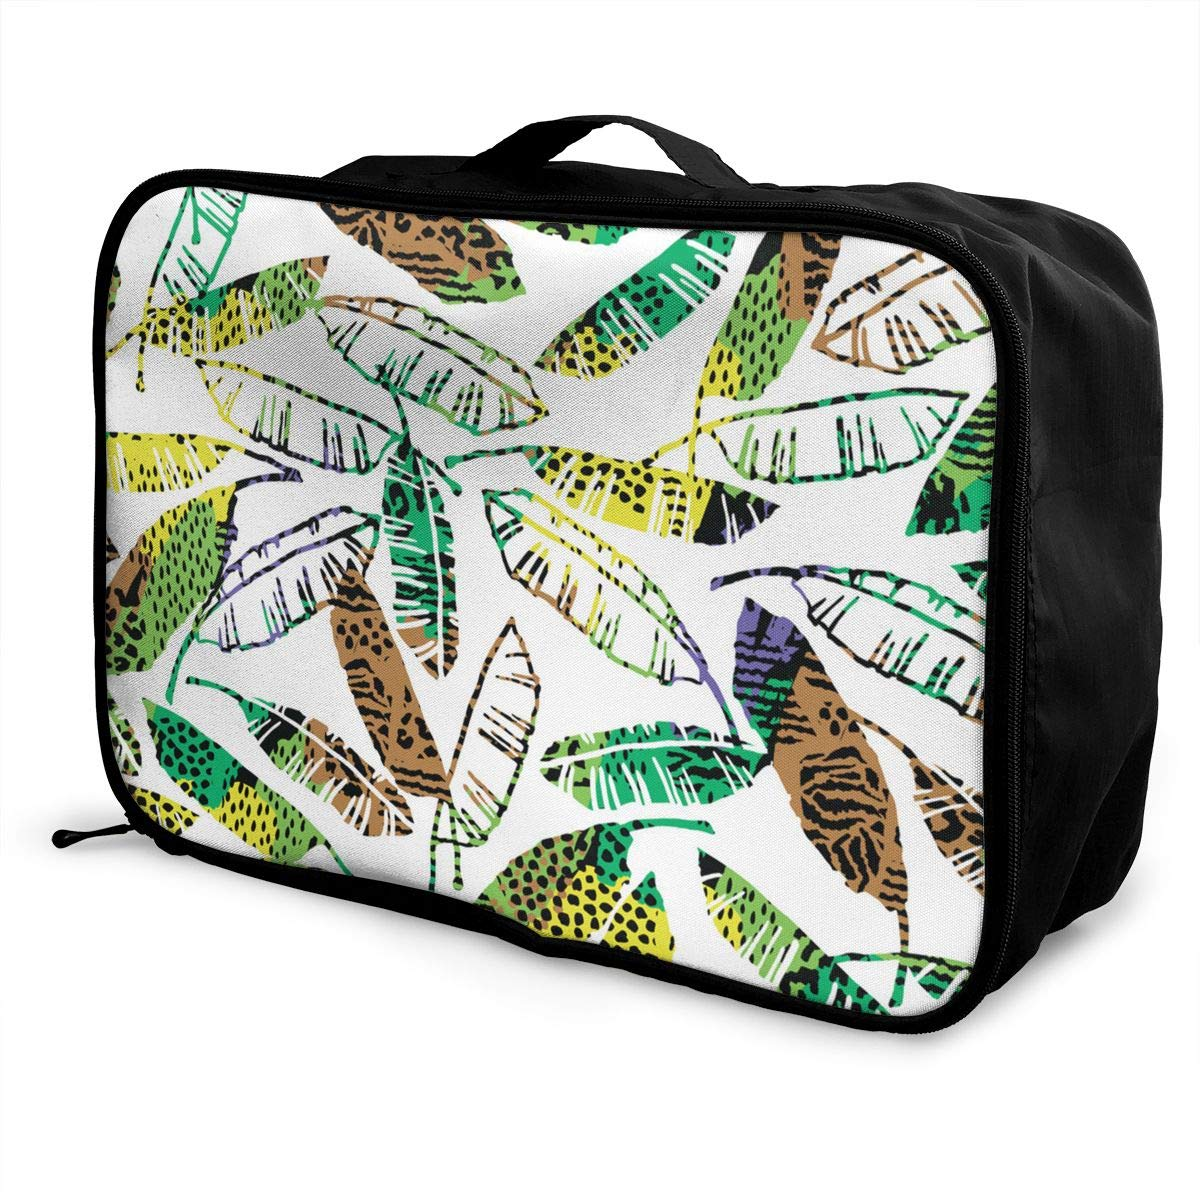 ADGAI Seamless Exotic Pattern with Palm Leaves Canvas Travel Weekender Bag,Fashion Custom Lightweight Large Capacity Portable Luggage Bag,Suitcase Trolley Bag